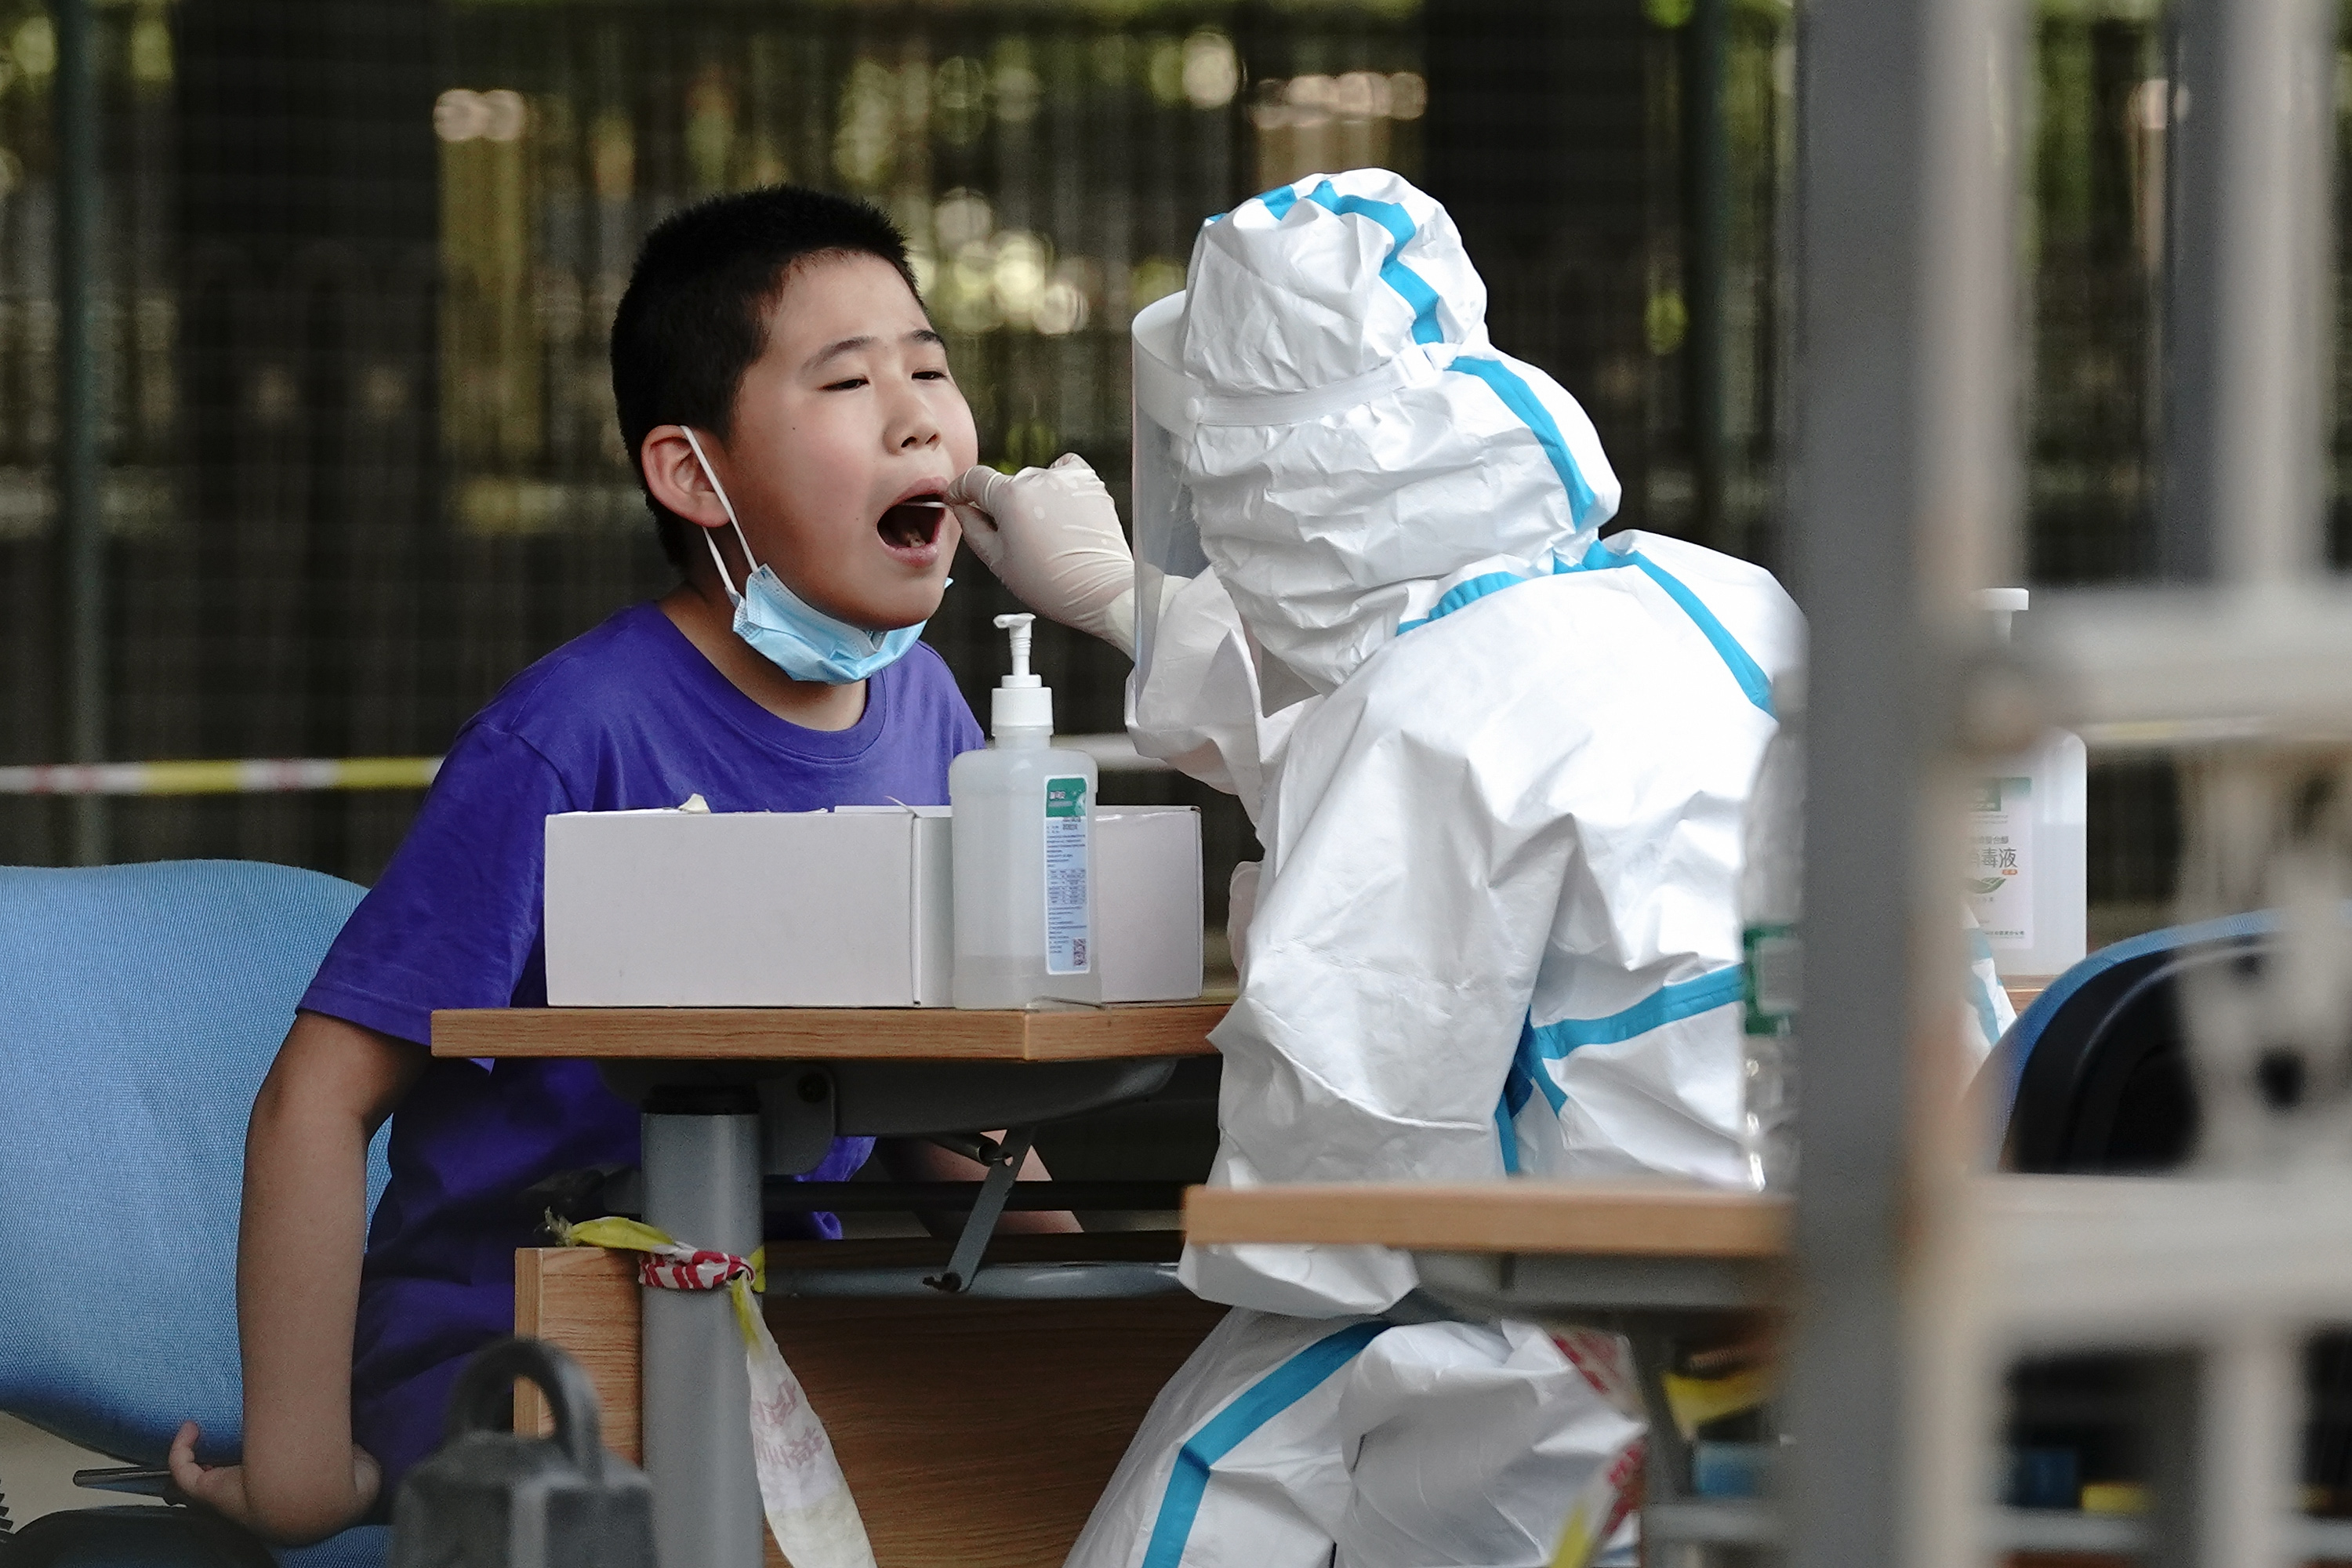 A medical worker wearing a protective suit takes a swap at a temporary COVID-19 testing site on June 30, 2020 in Beijing, China.